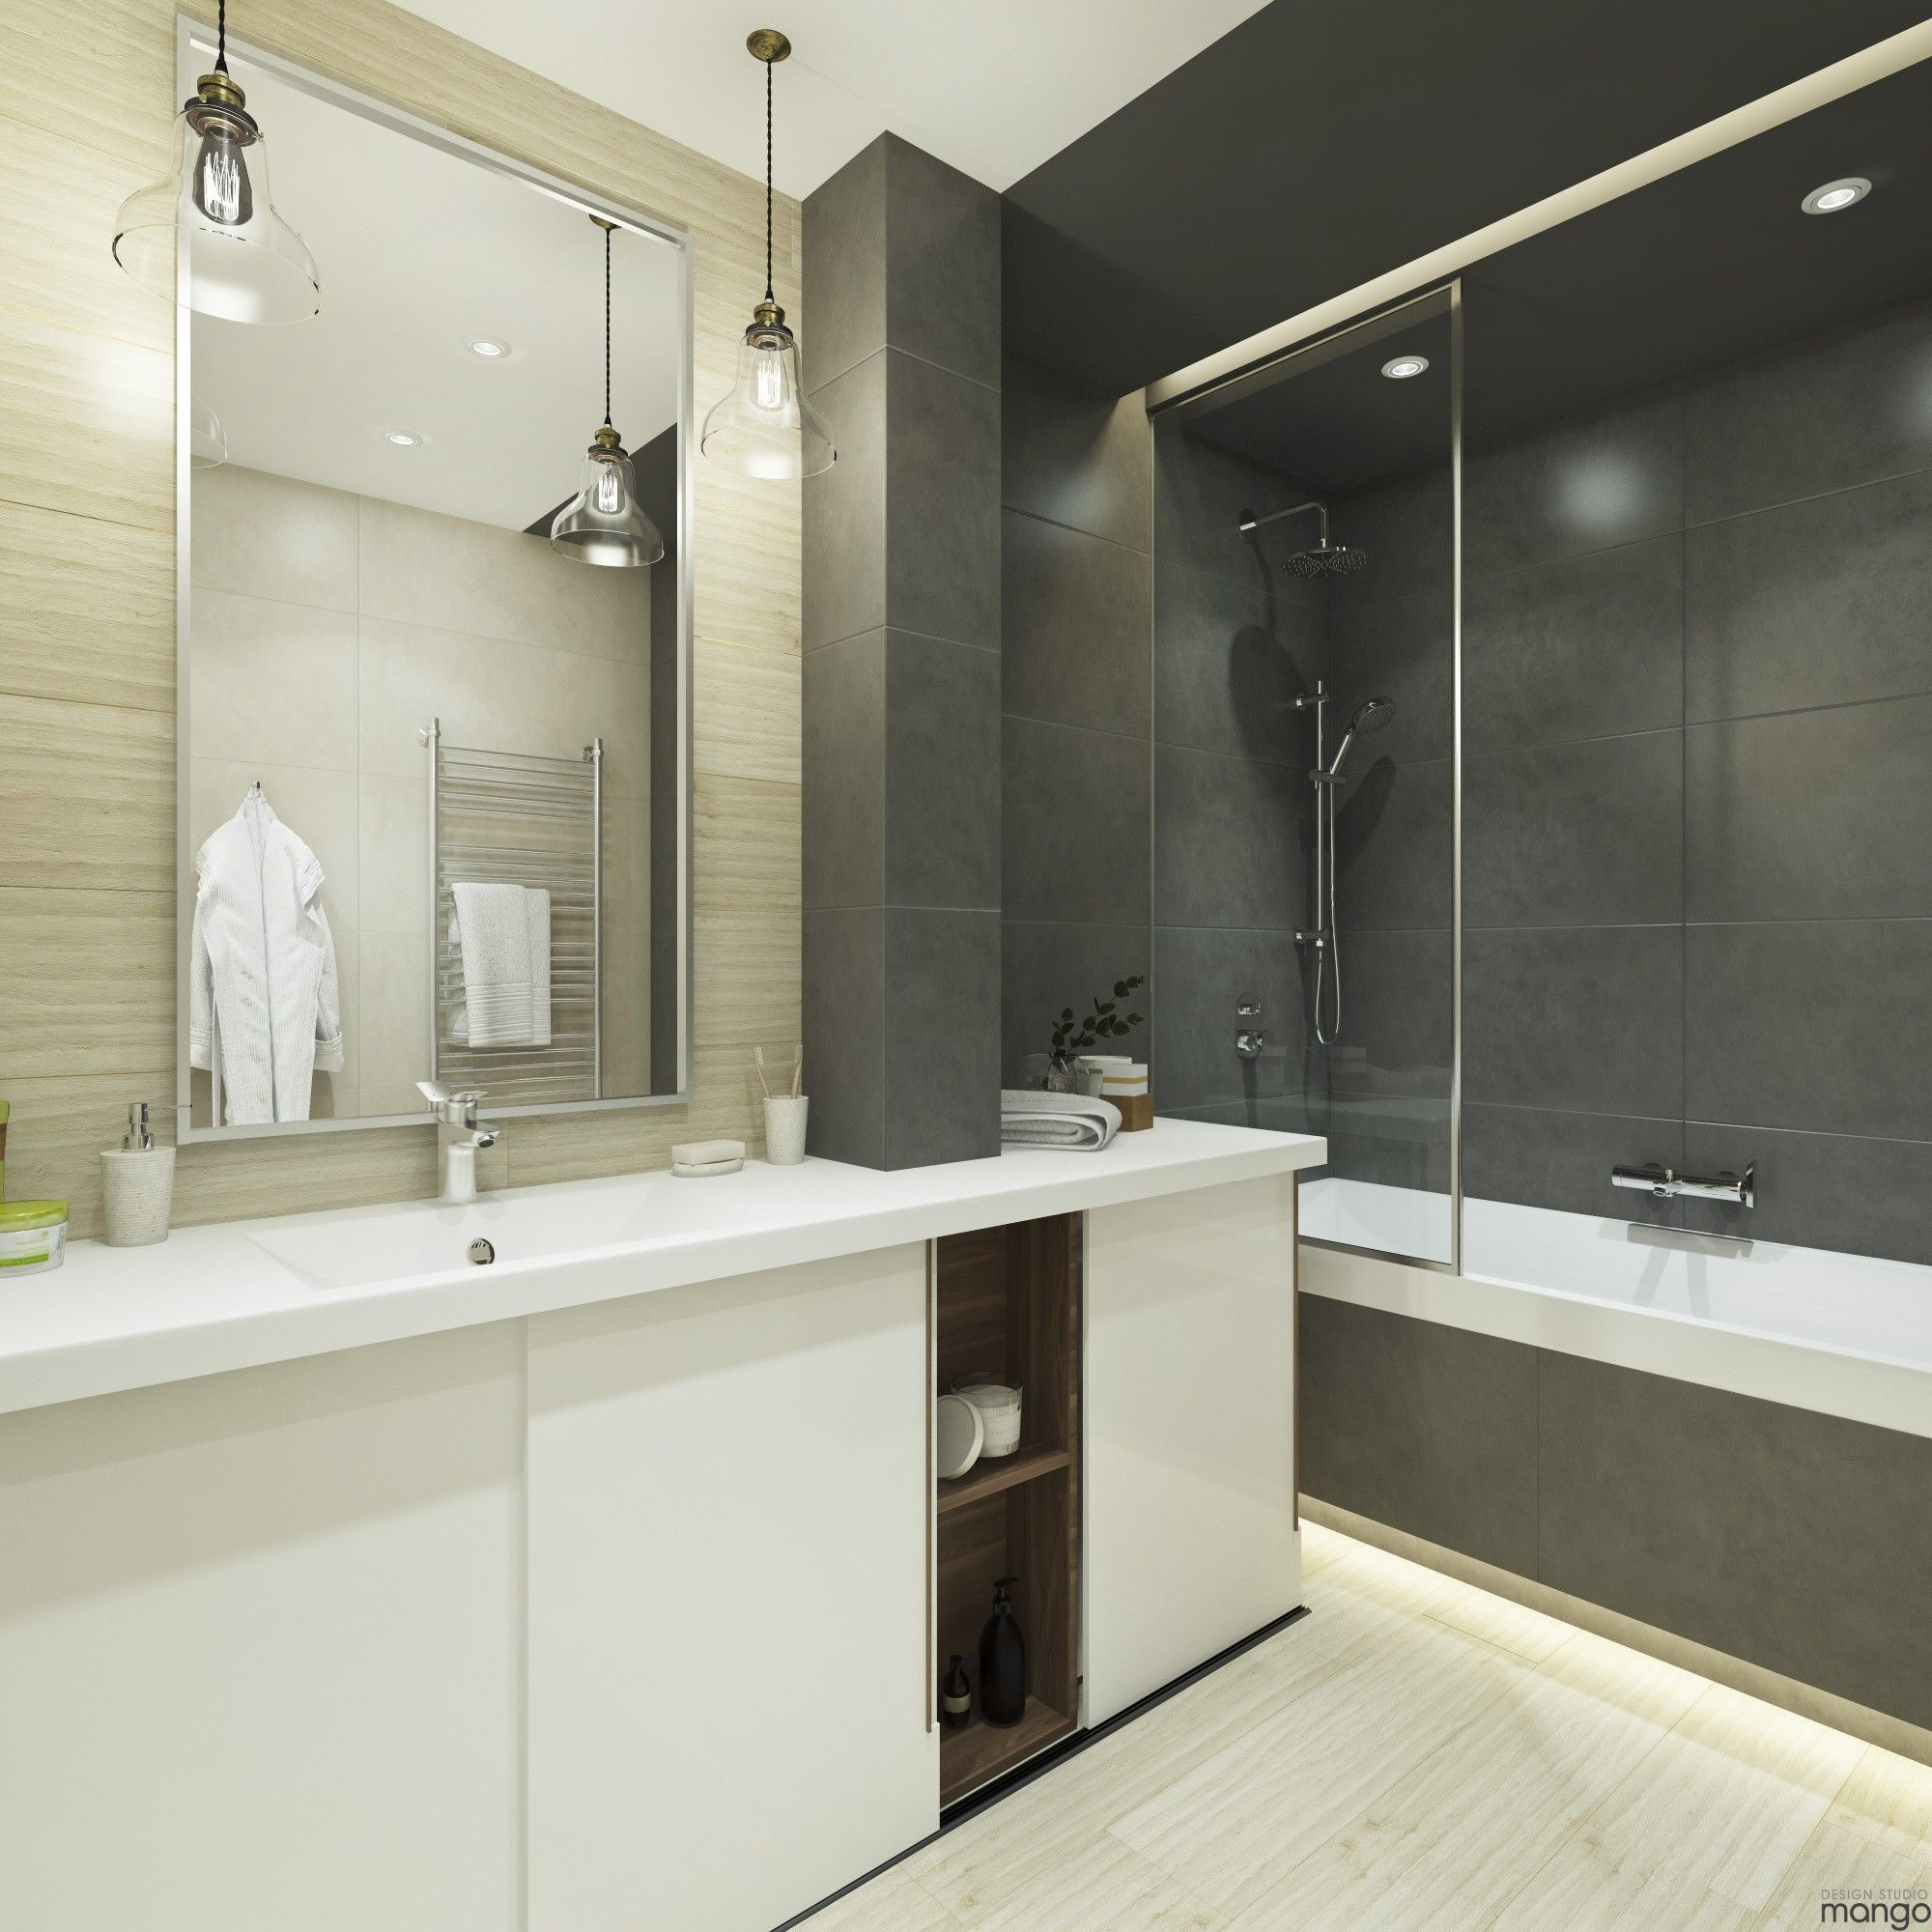 Modern Small Bathroom Designs Combined With Variety Of Tile Unique Small Beautiful Bathrooms Decorating Inspiration